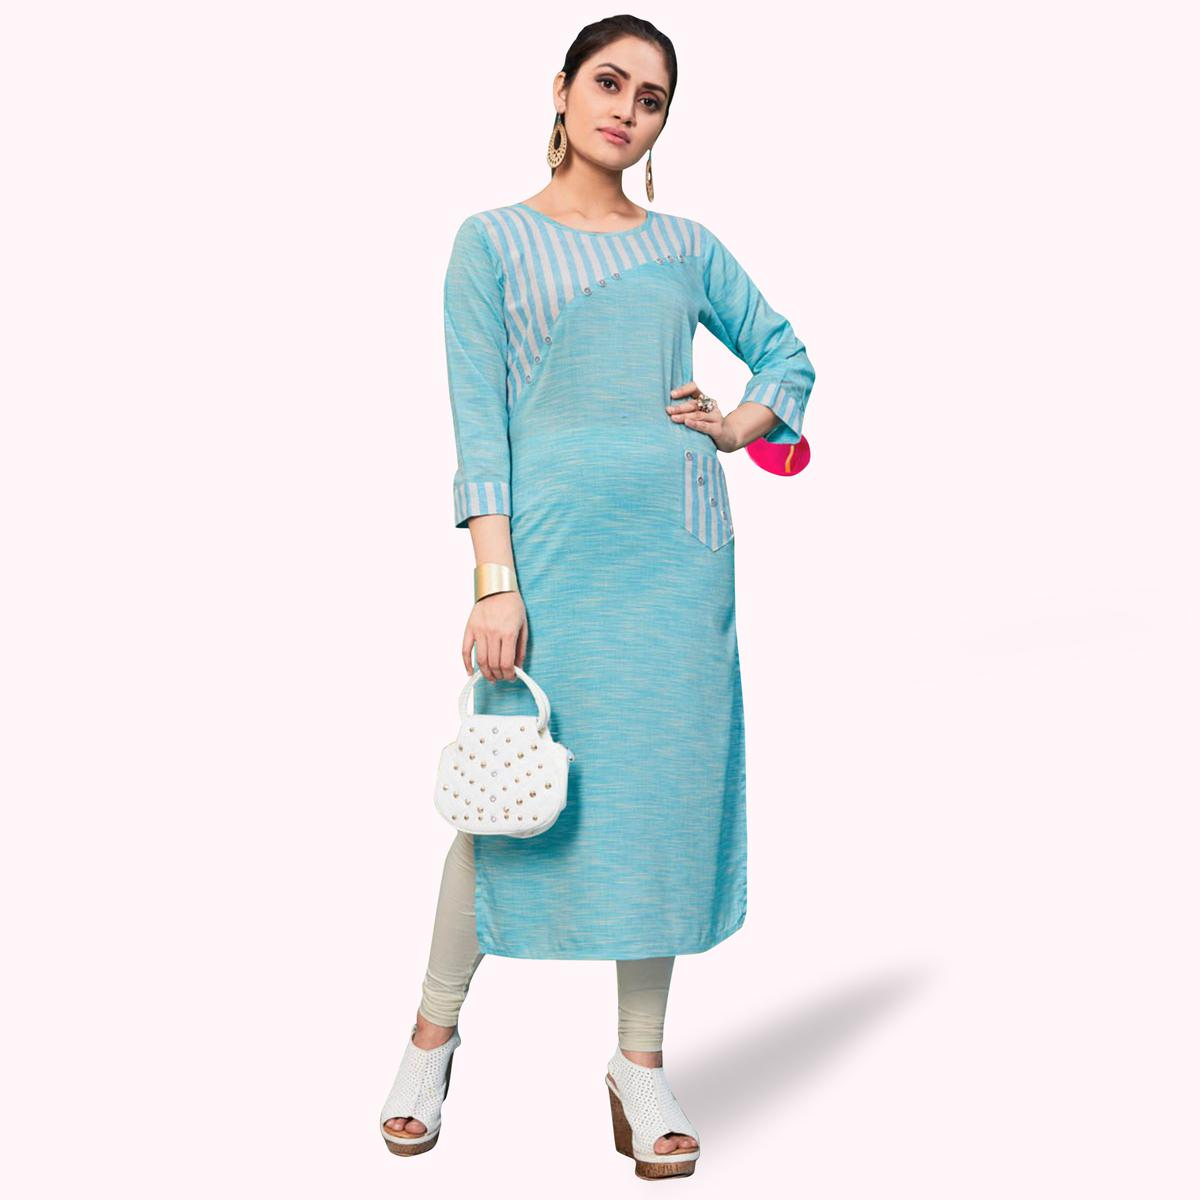 Ravishing Sky Blue Colored Casual Wear Printed Khadi-Rayon Kurti